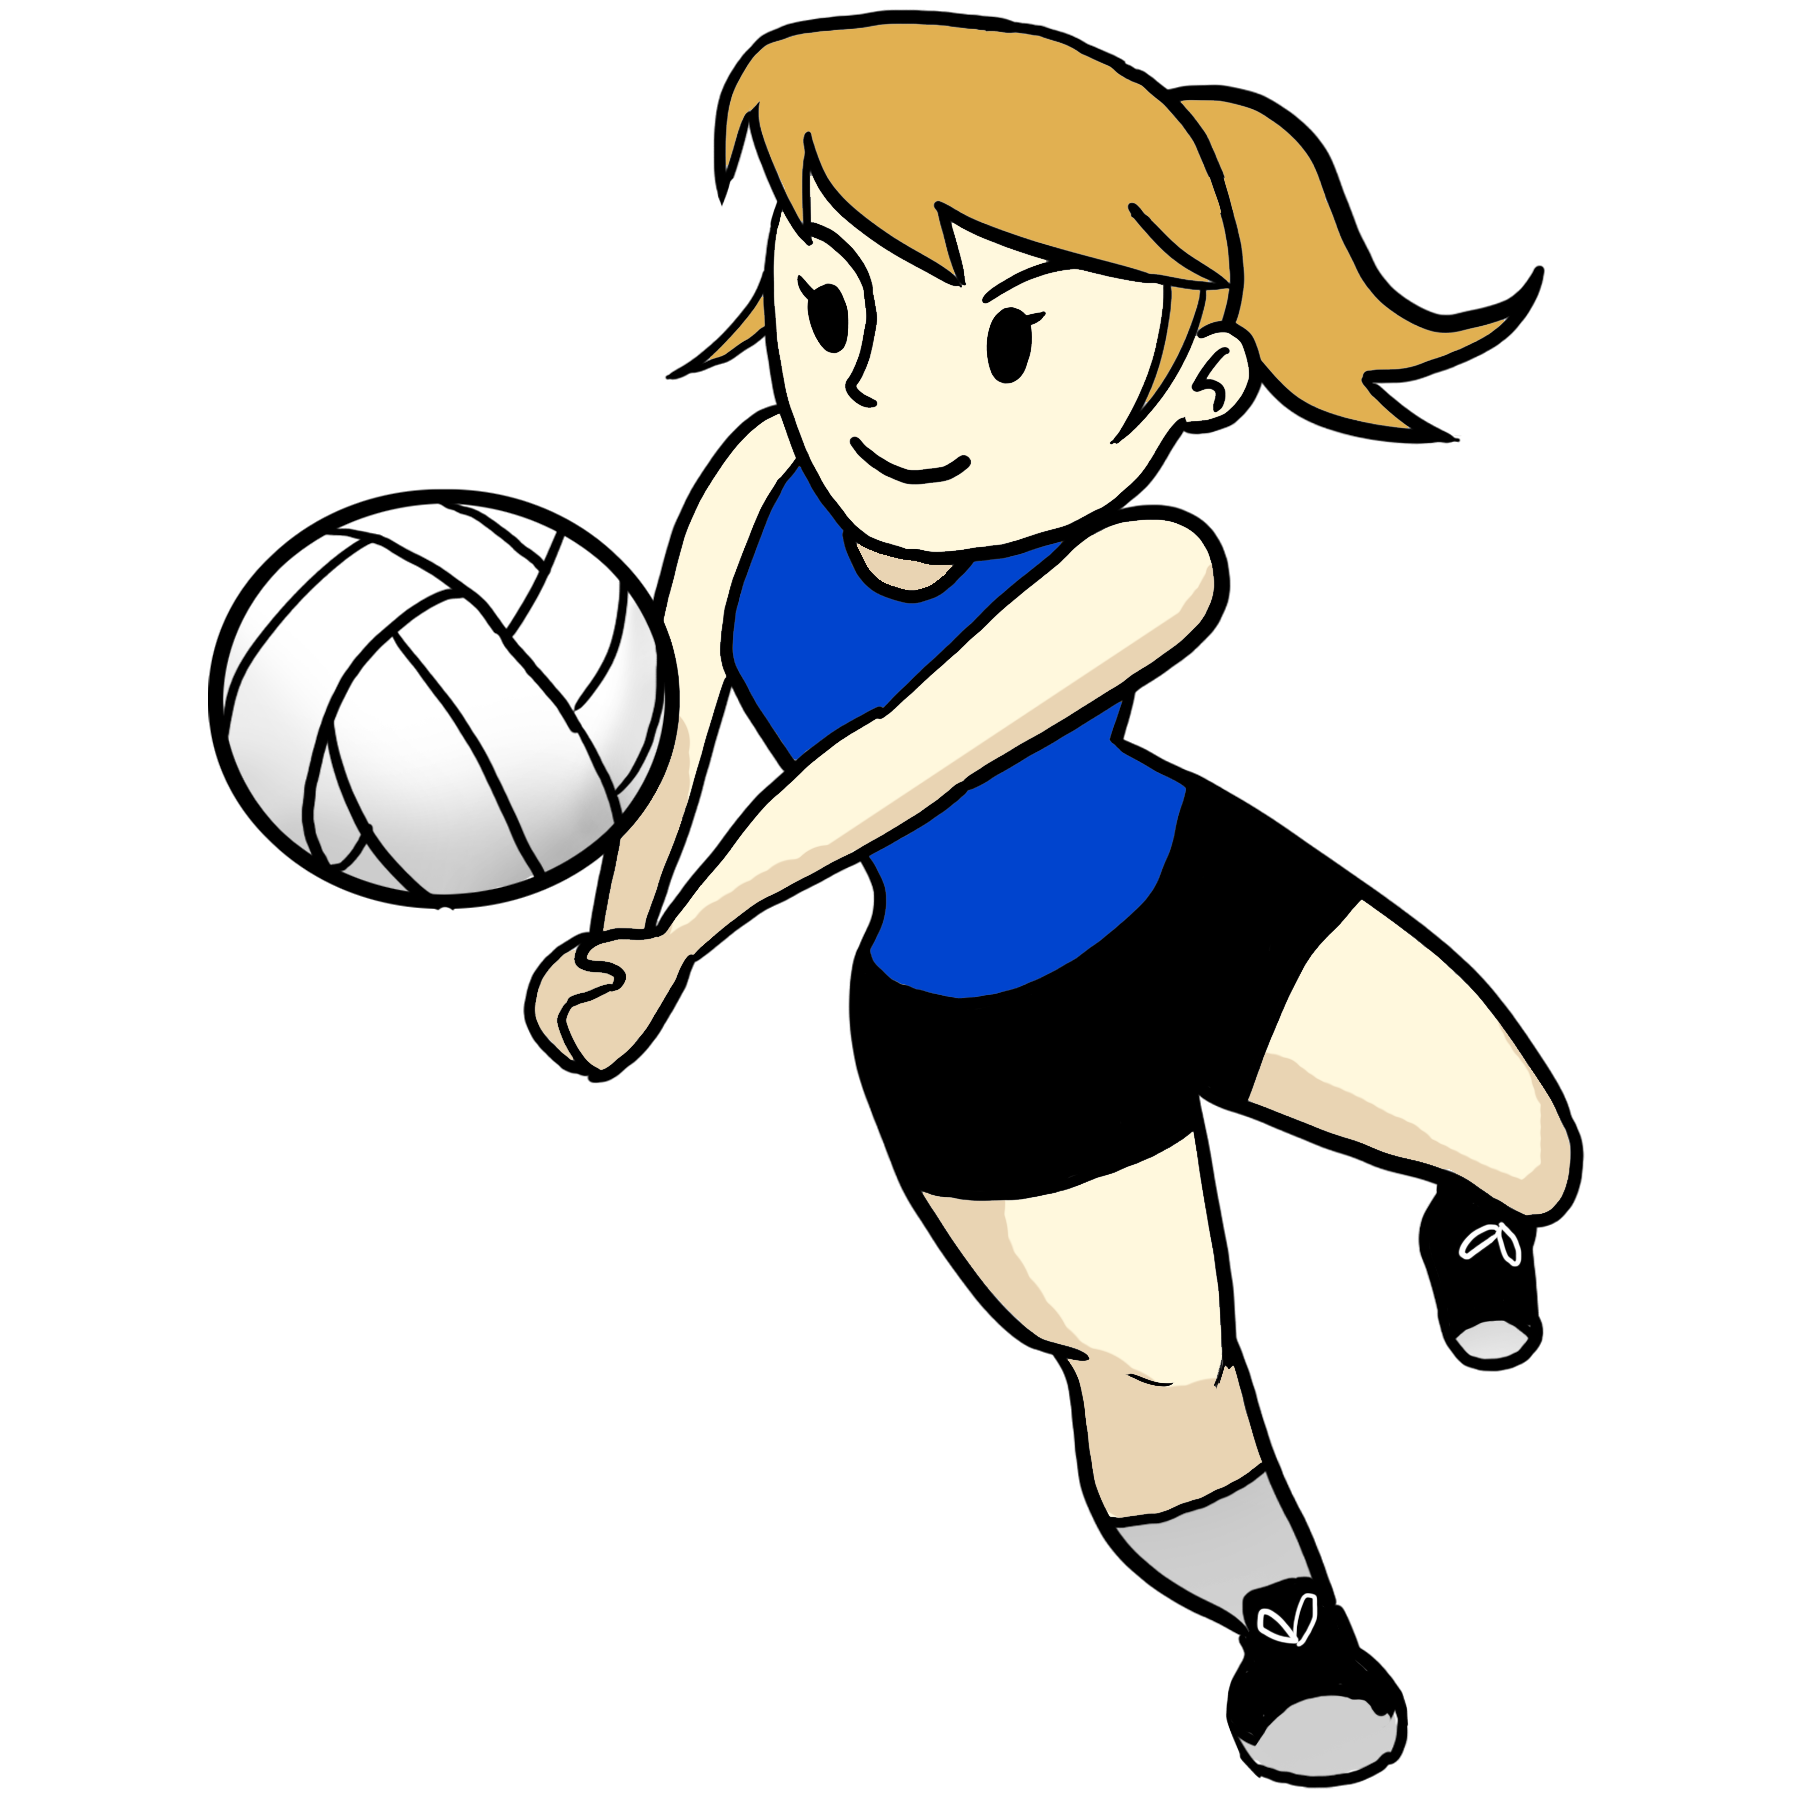 Hand clipart volleyball. Player png clip art